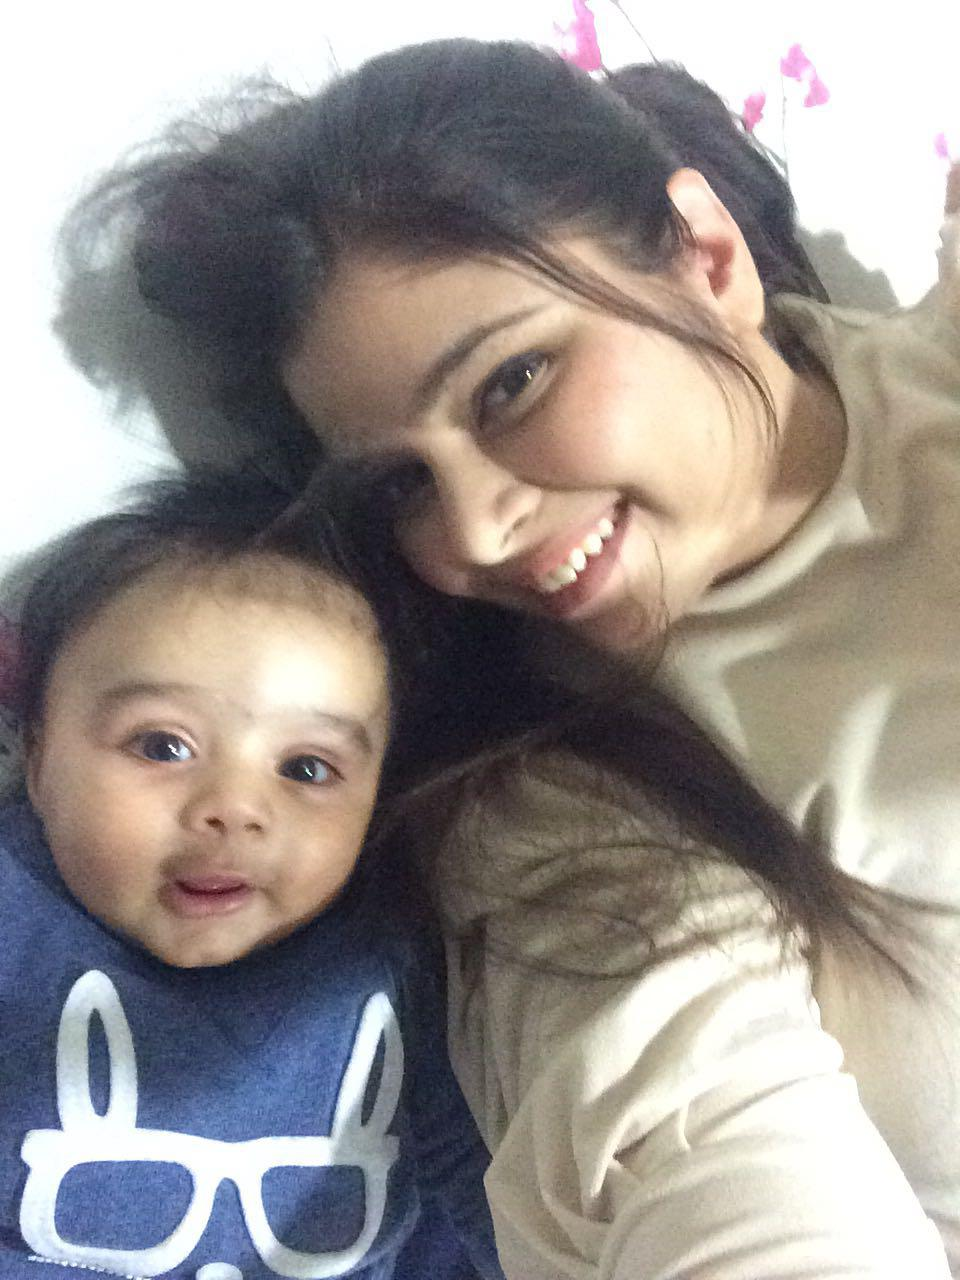 Himanshi: What an energetic birth story